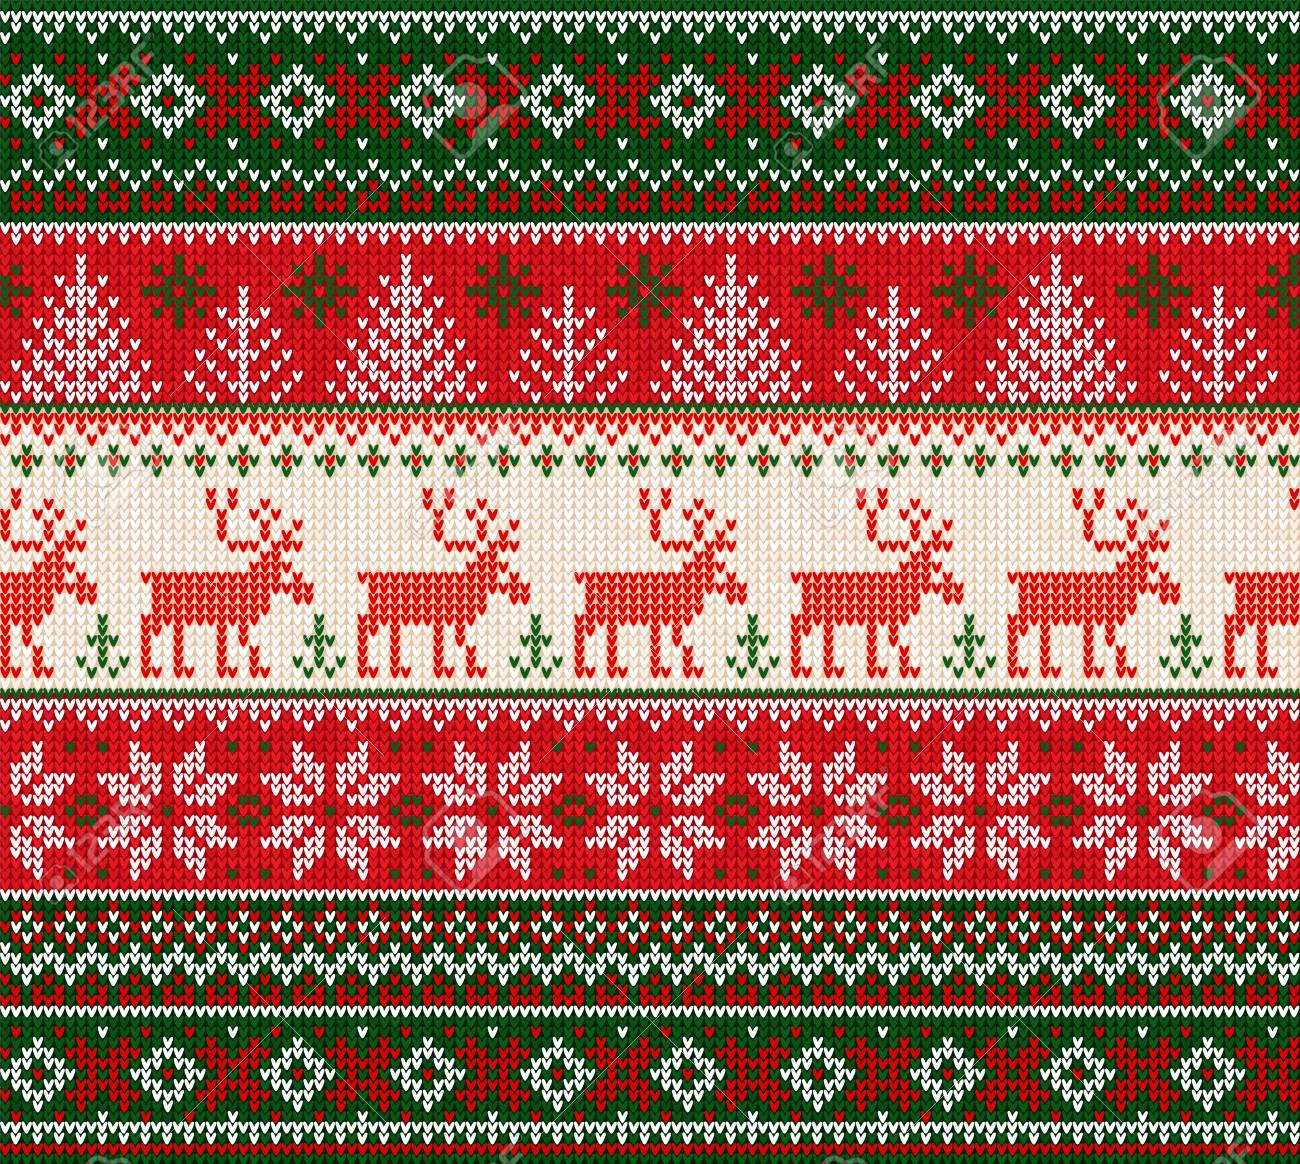 Ugly Sweater Merry Christmas Happy New Year Vector Illustration Royalty Free Cliparts Vectors And Stock Illustration Image 127716616